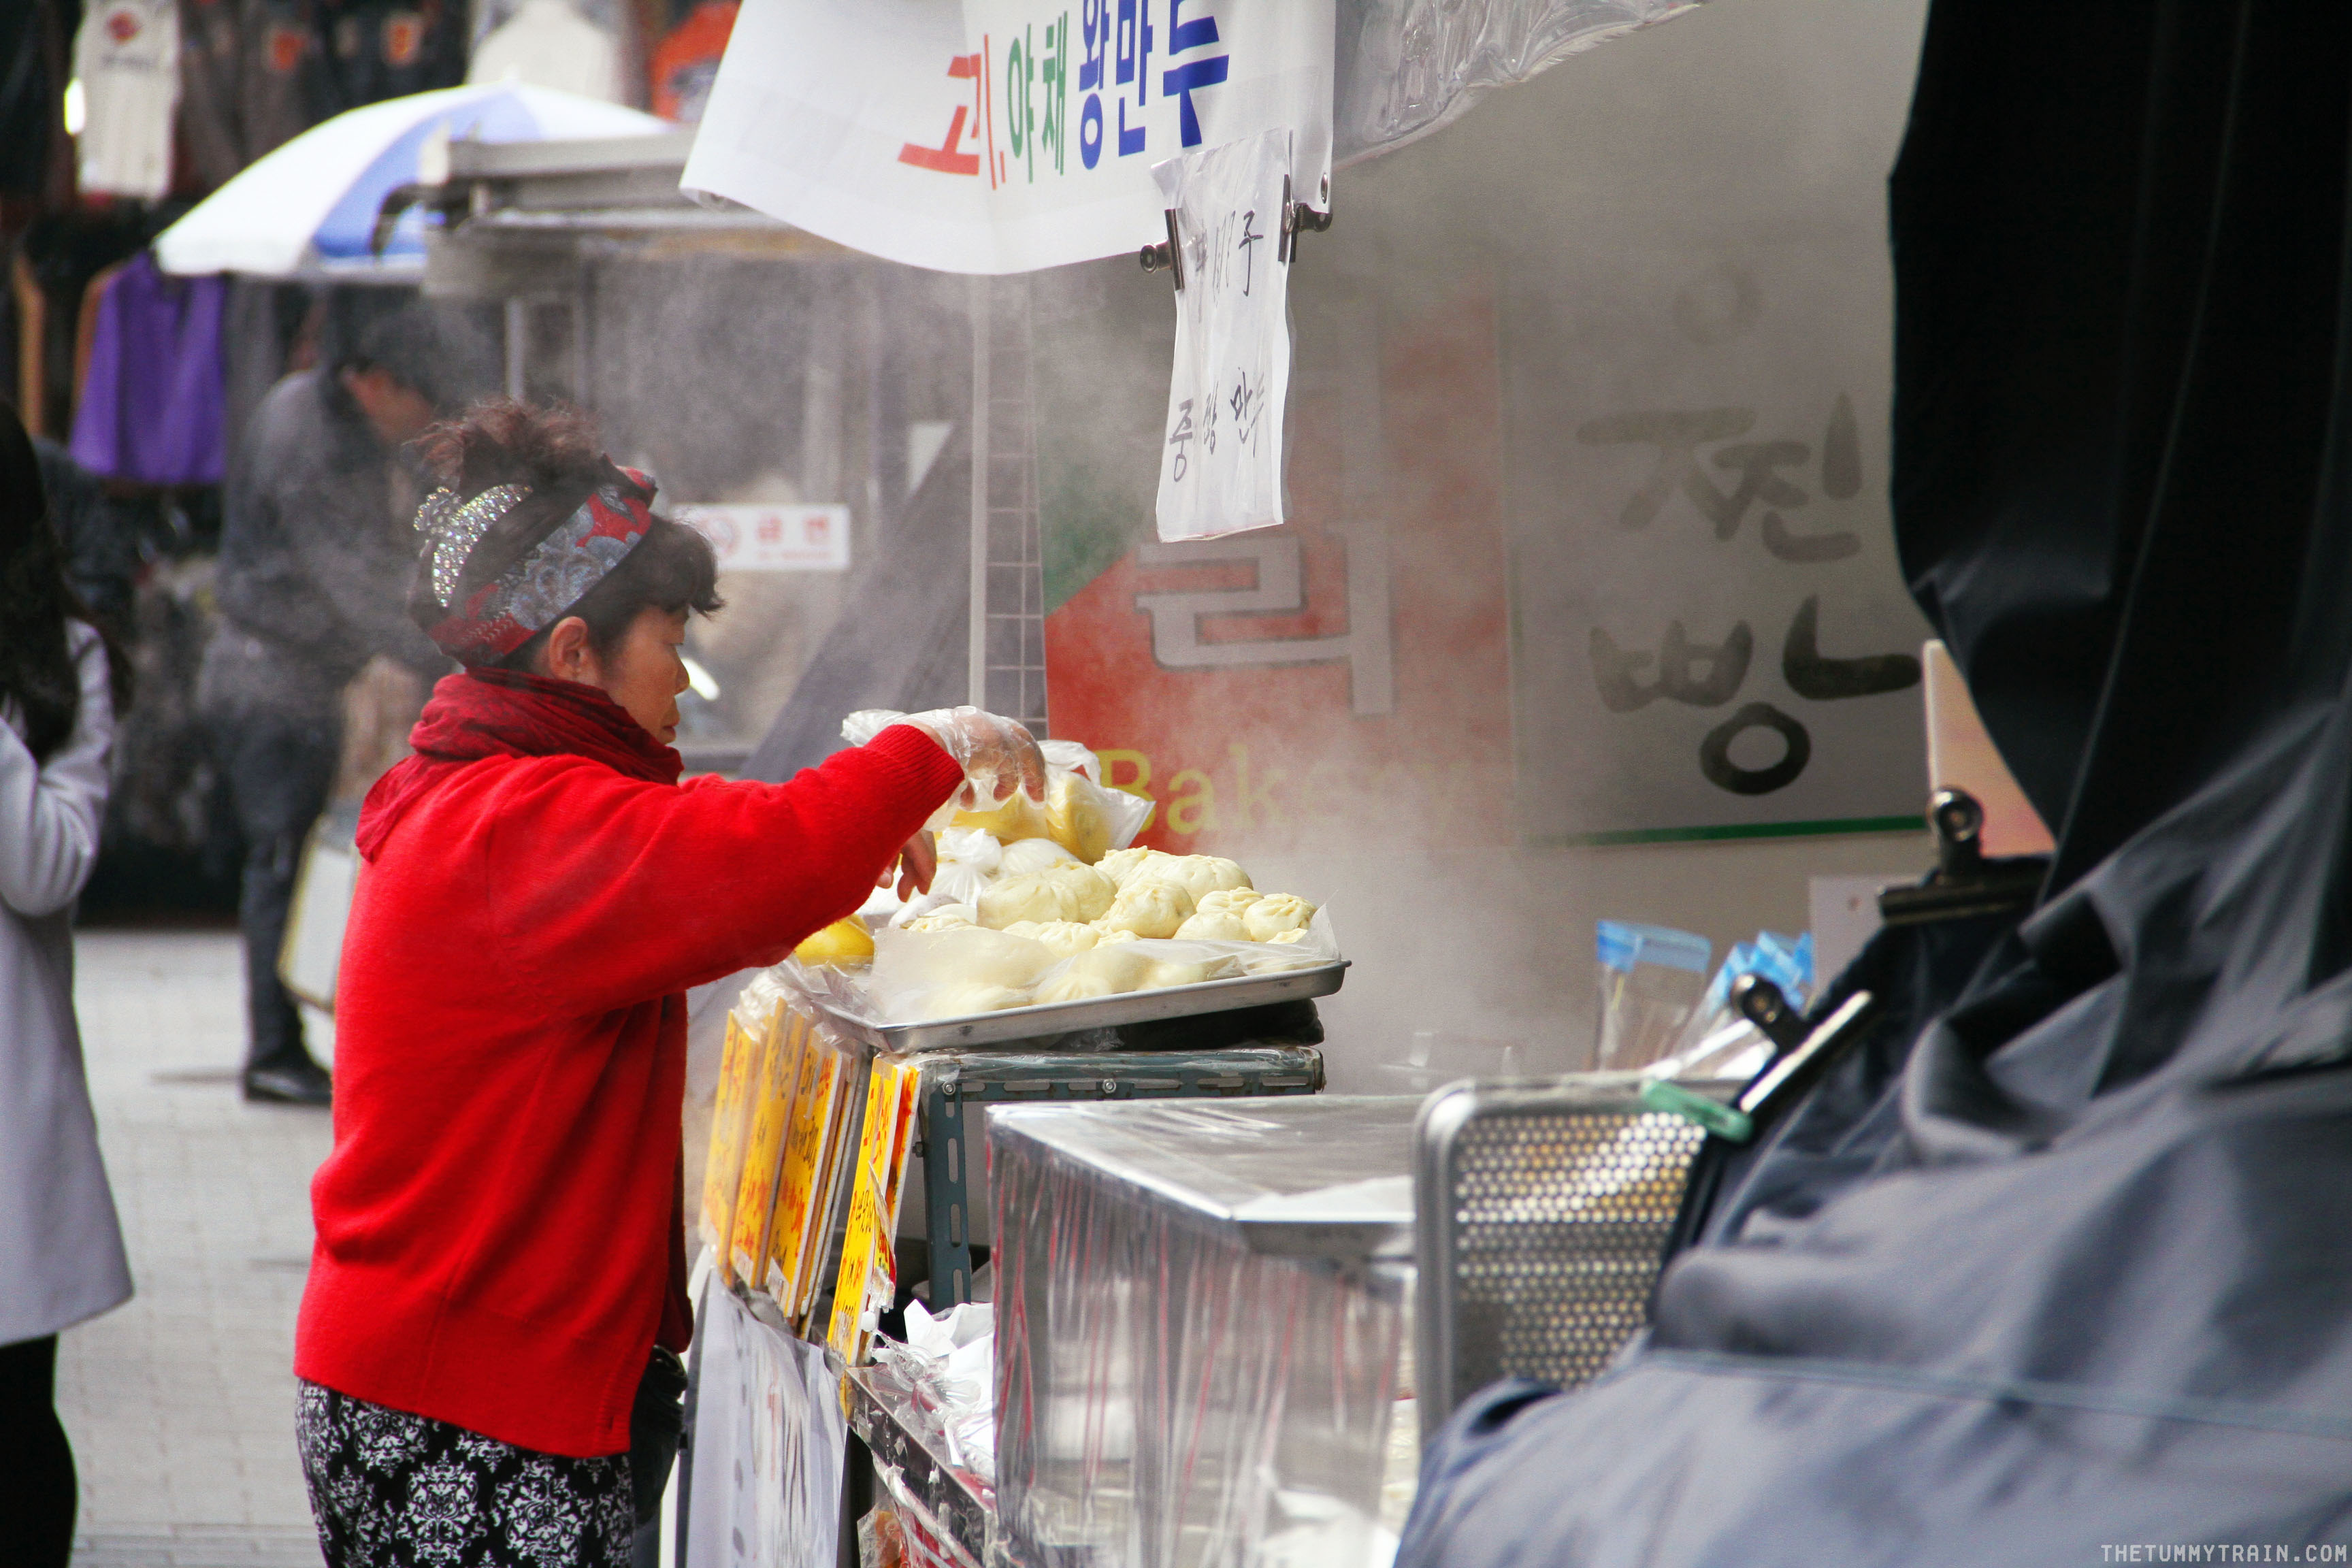 Namdaemun COVER - Seoul-ful Spring 2016: A quick morning run to Namdaemun Market